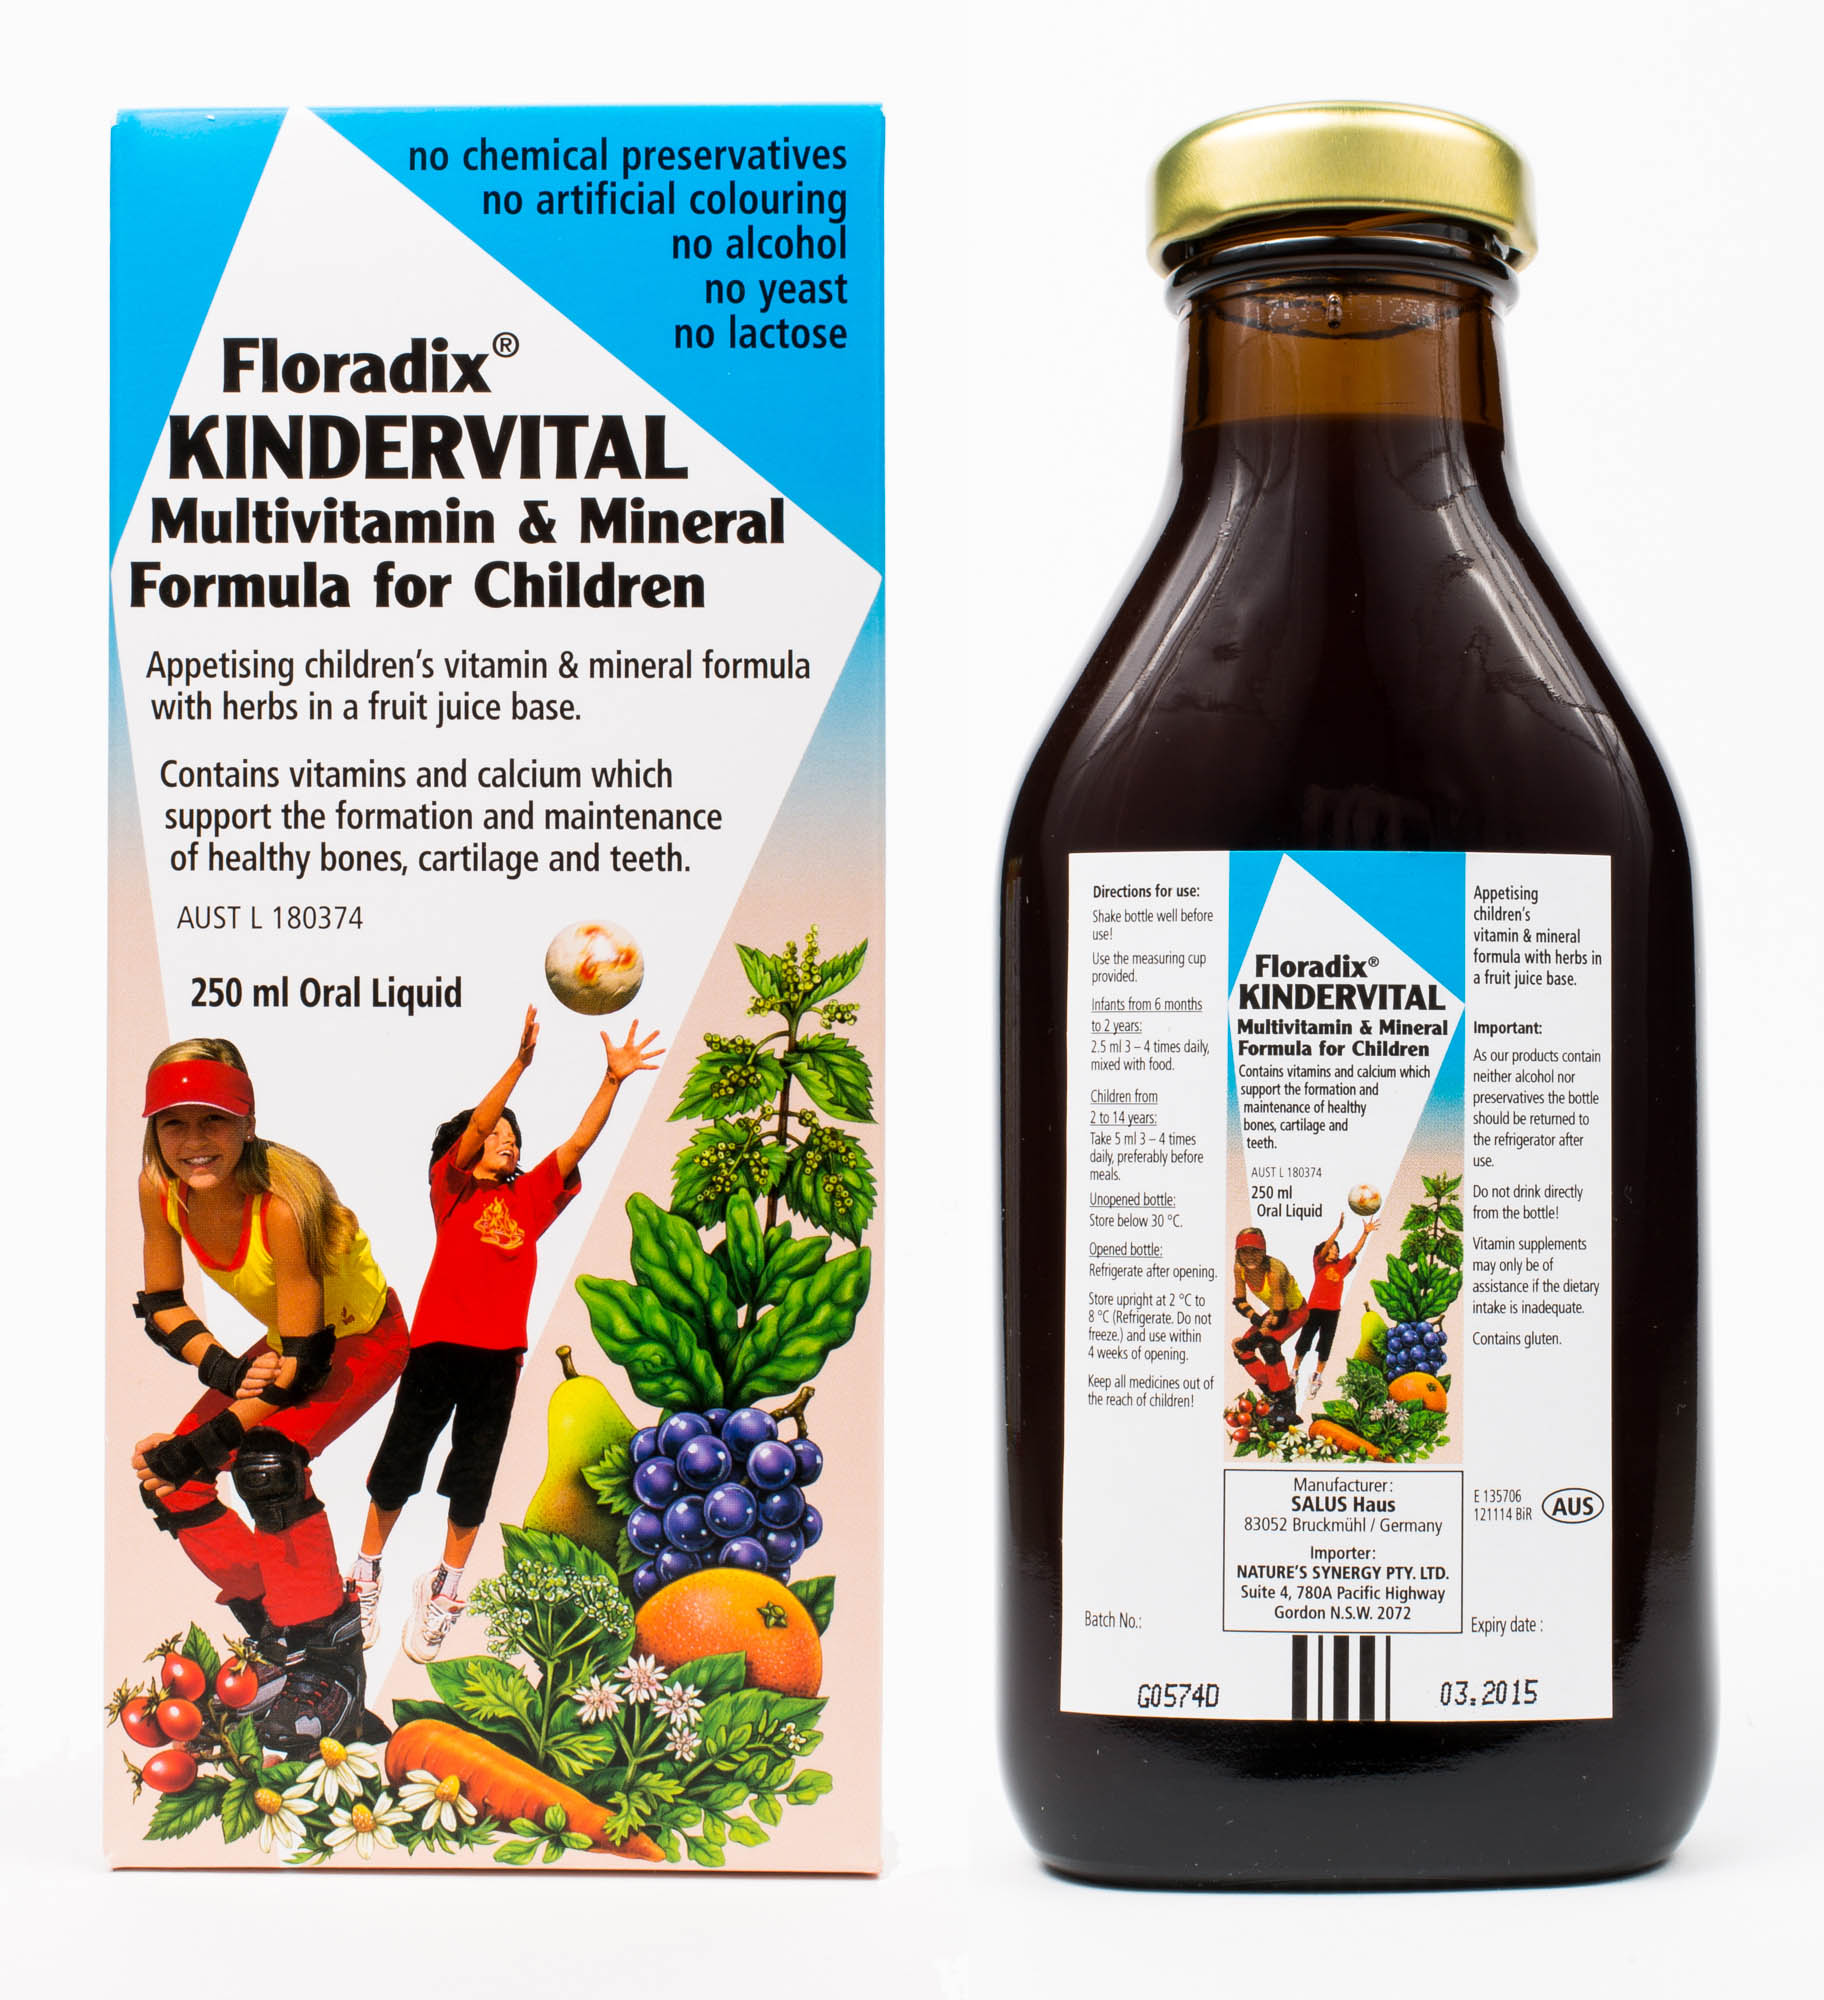 floradix kindervital multivitamin drink